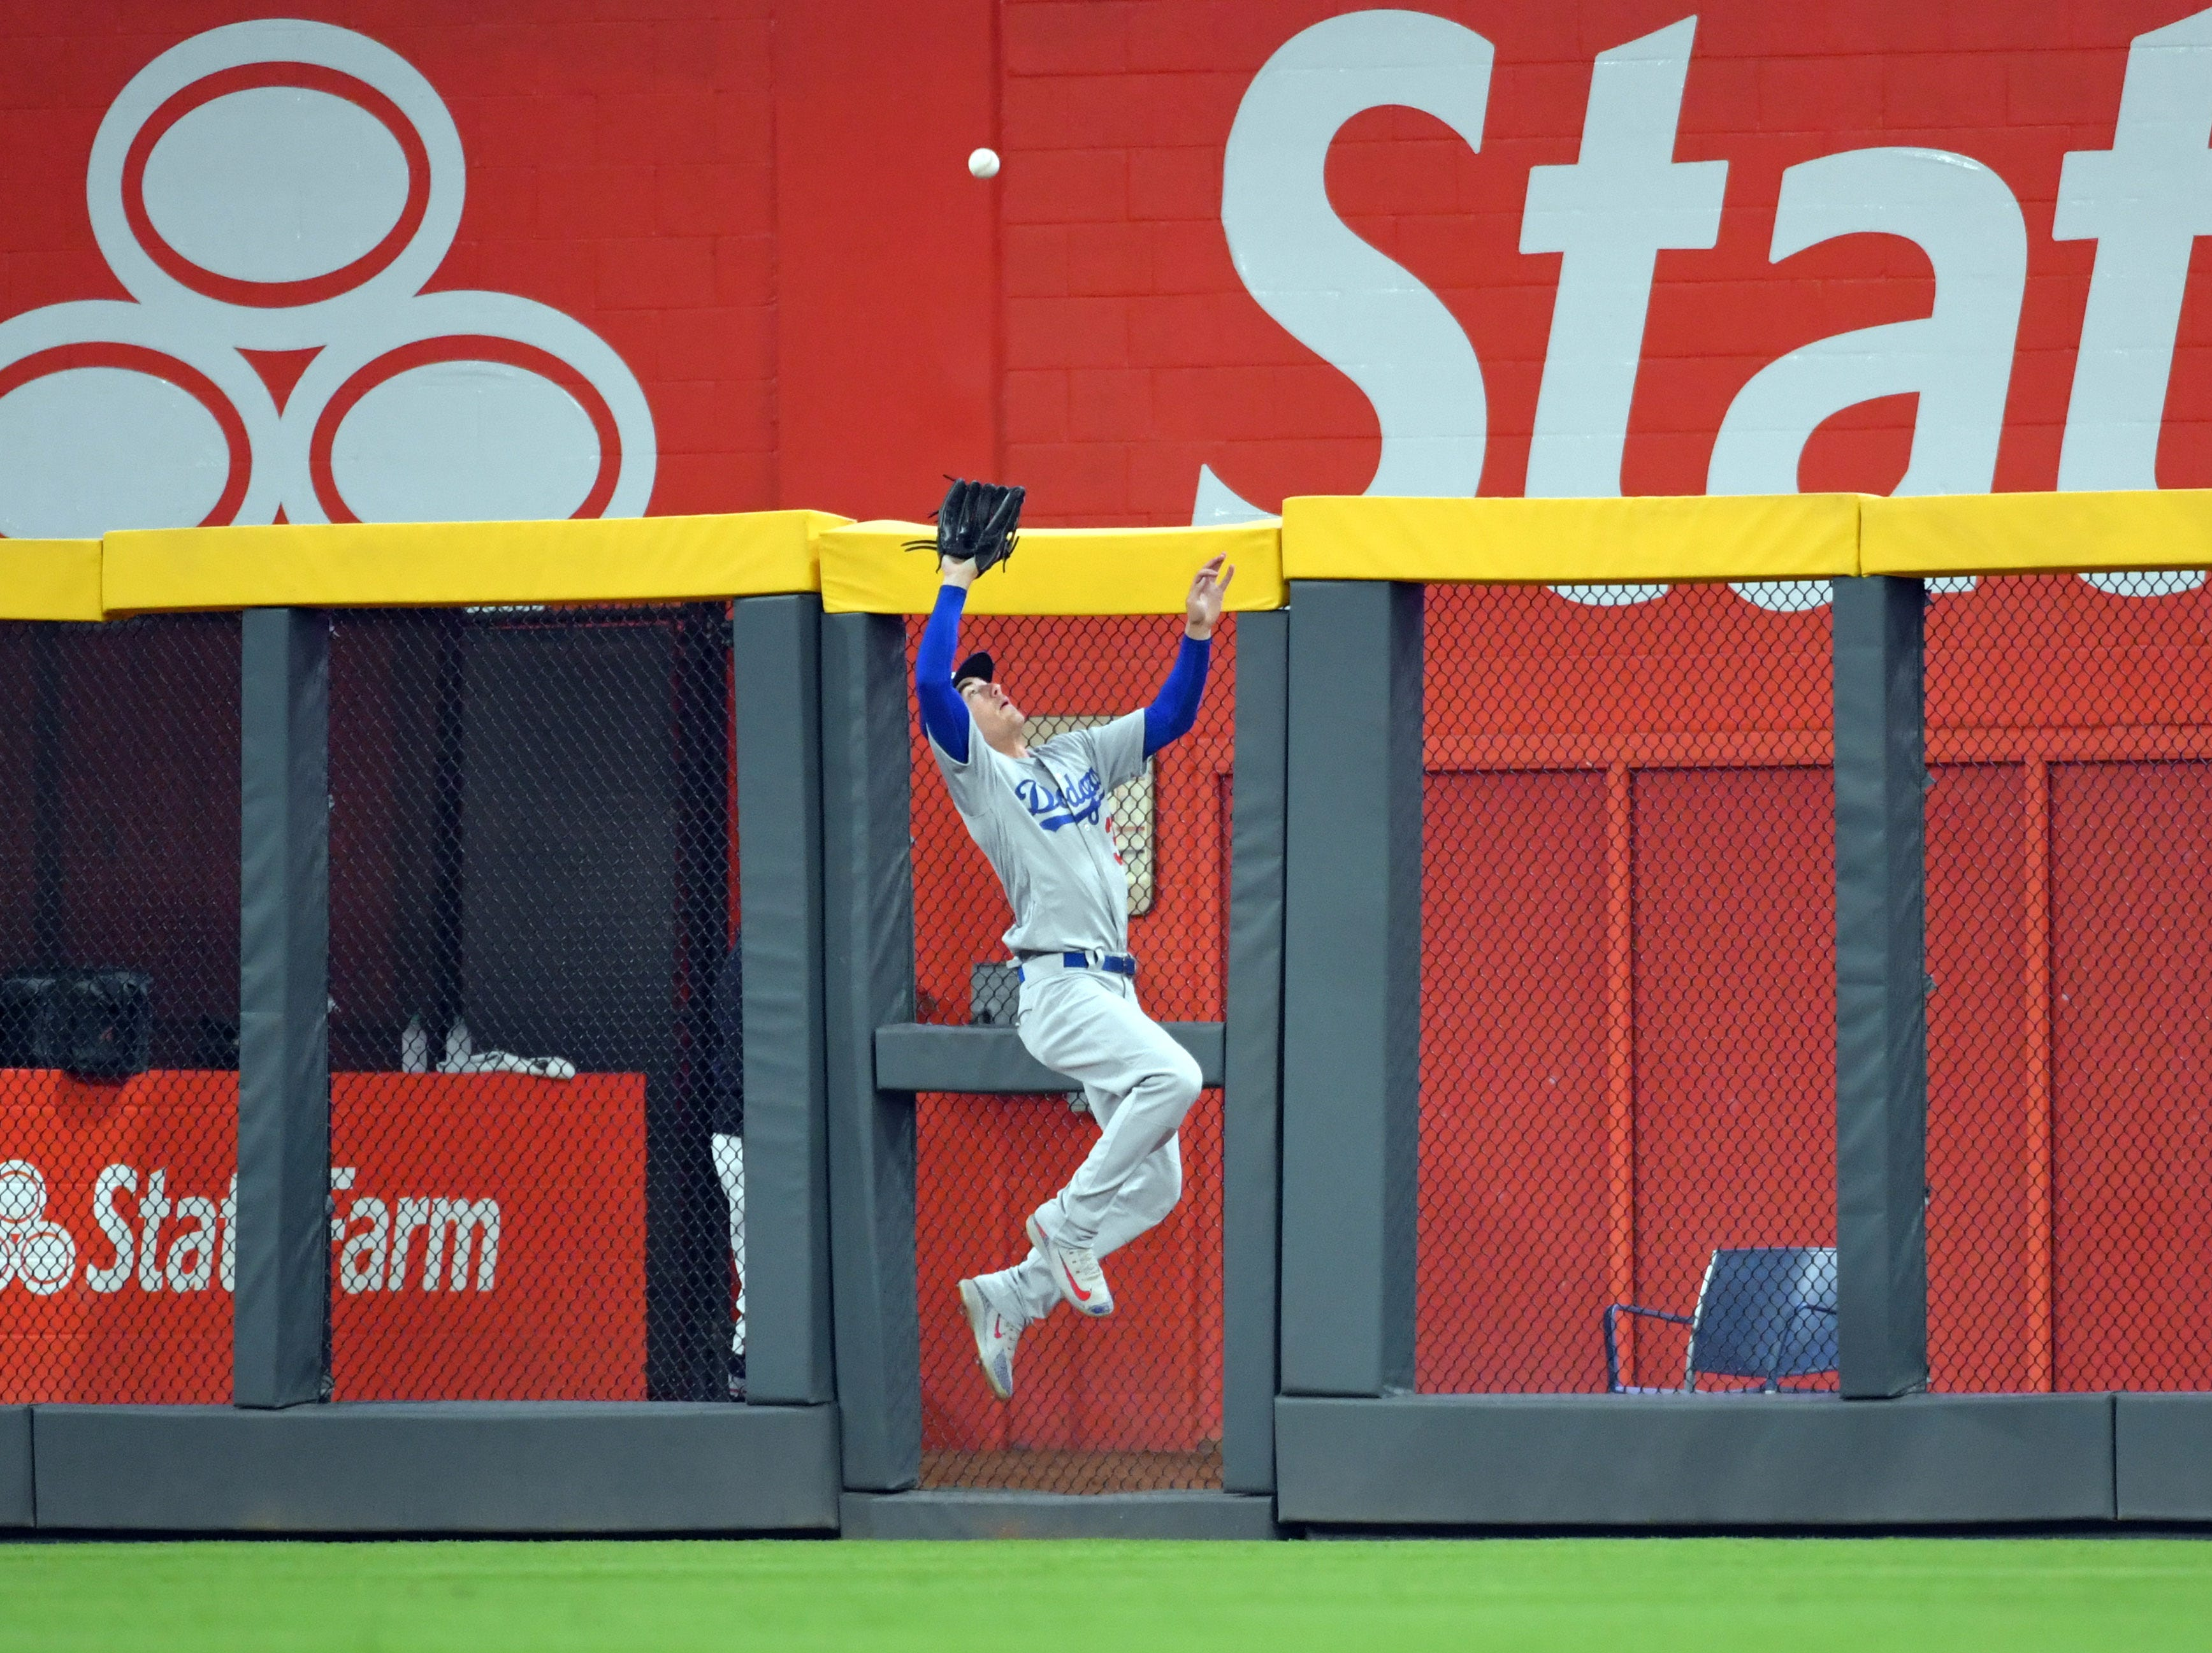 NLDS Game 3: Dodgers center fielder Cody Bellinger makes a leaping catch at the wall.